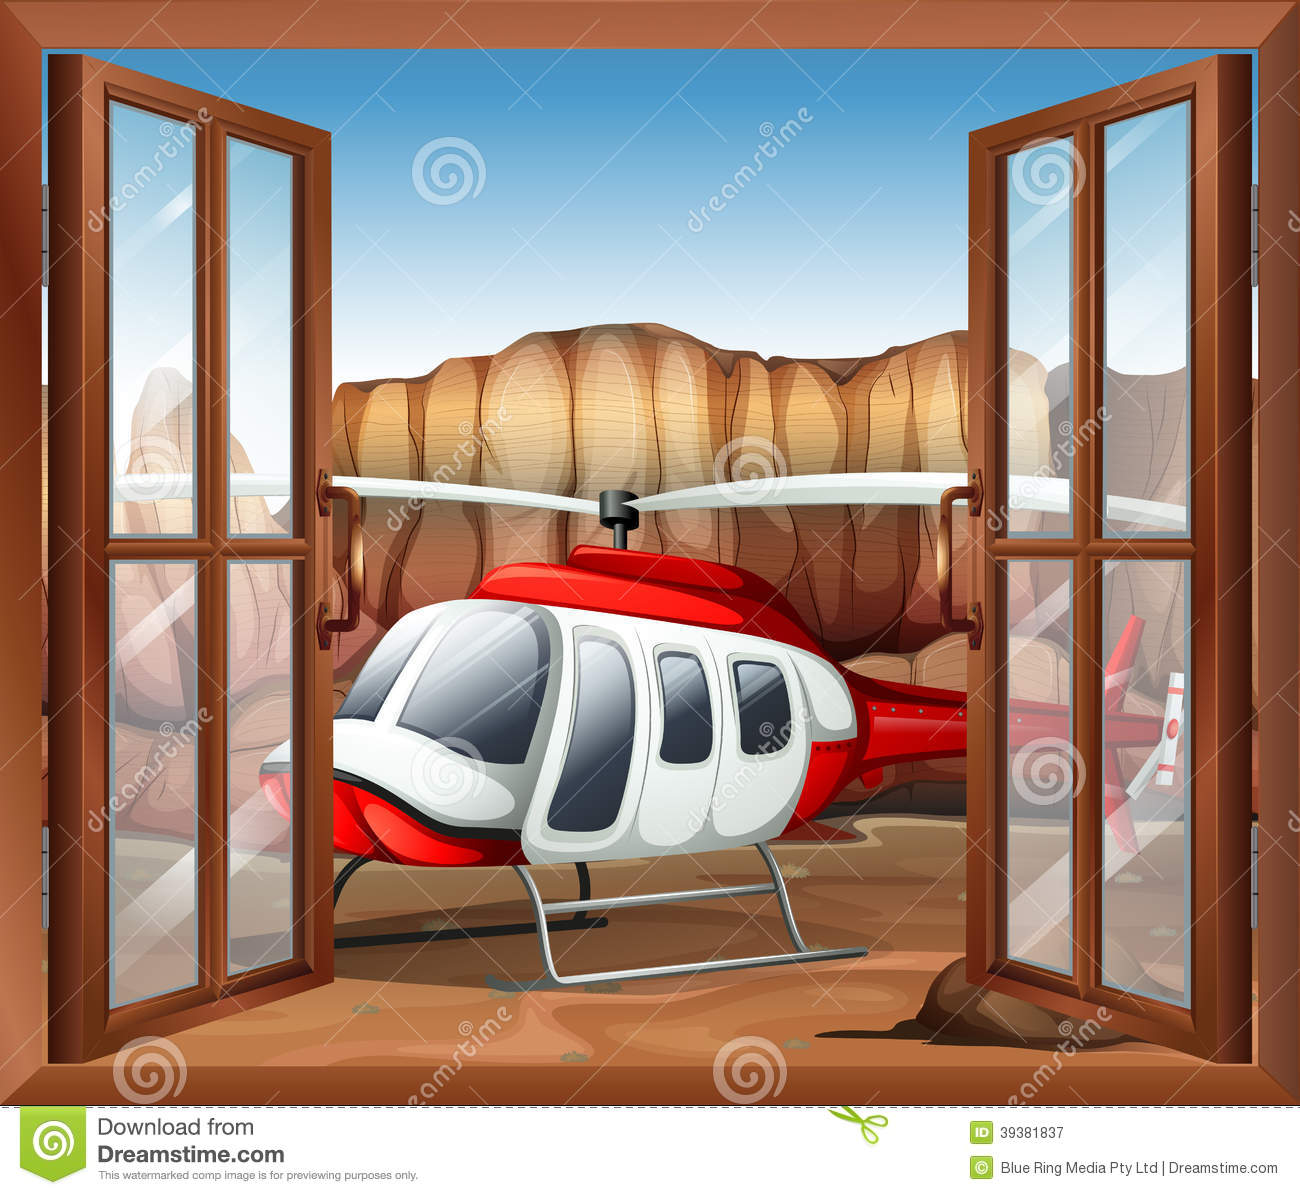 A window with a chopper outside